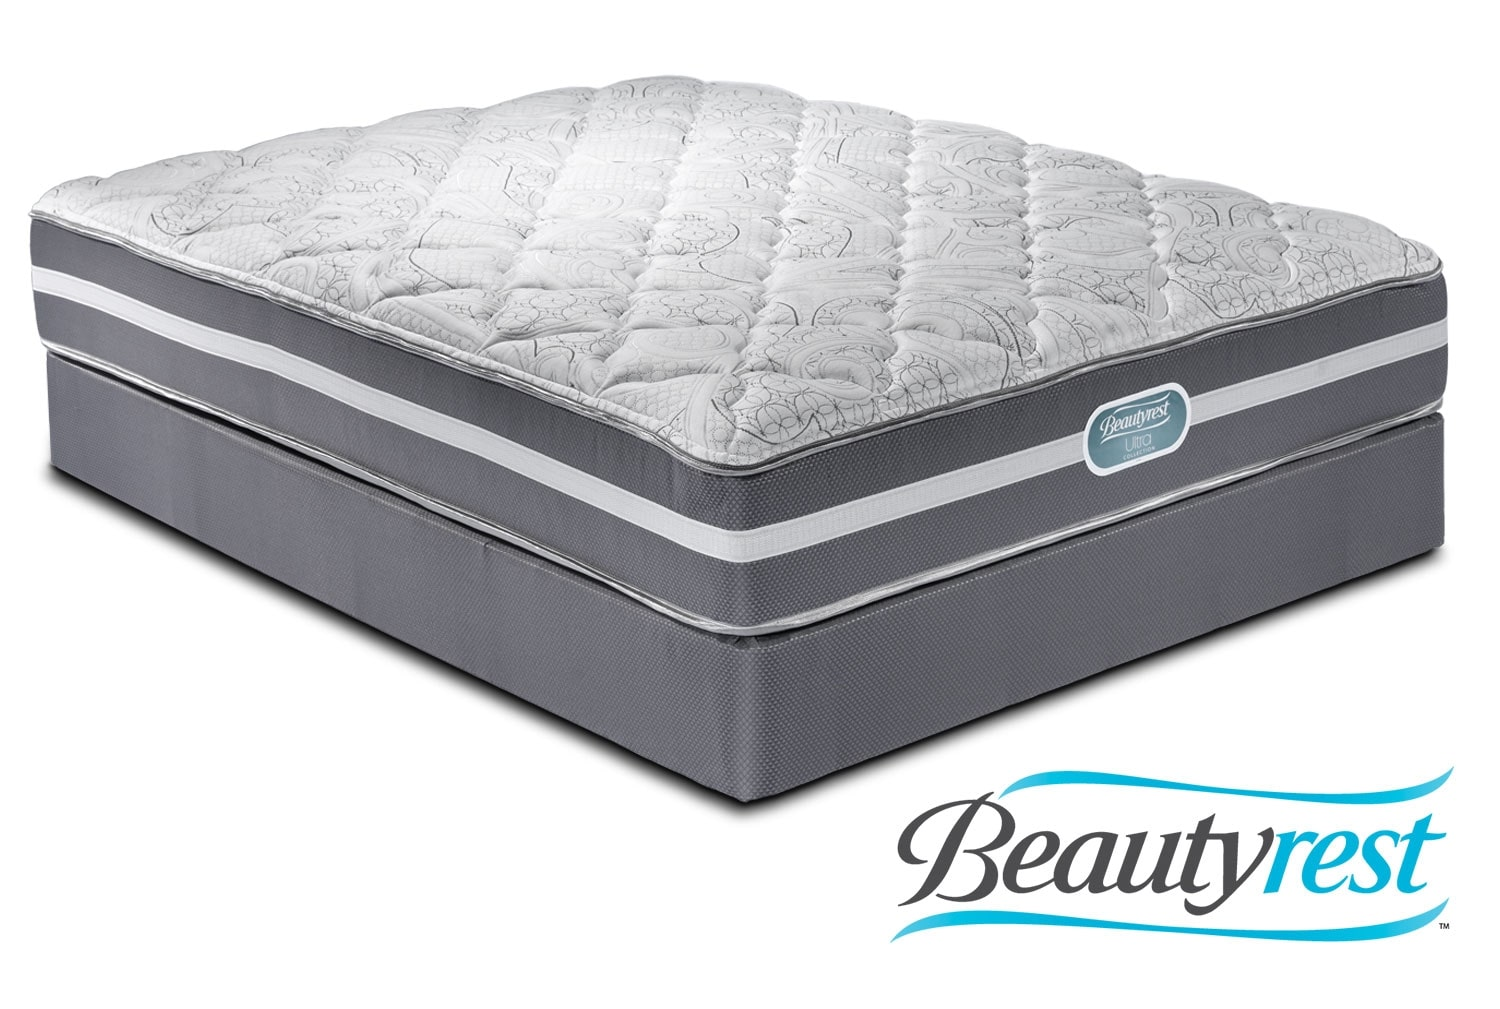 Mattresses and Bedding - Simmons Splendor Full Mattress/Boxspring Set